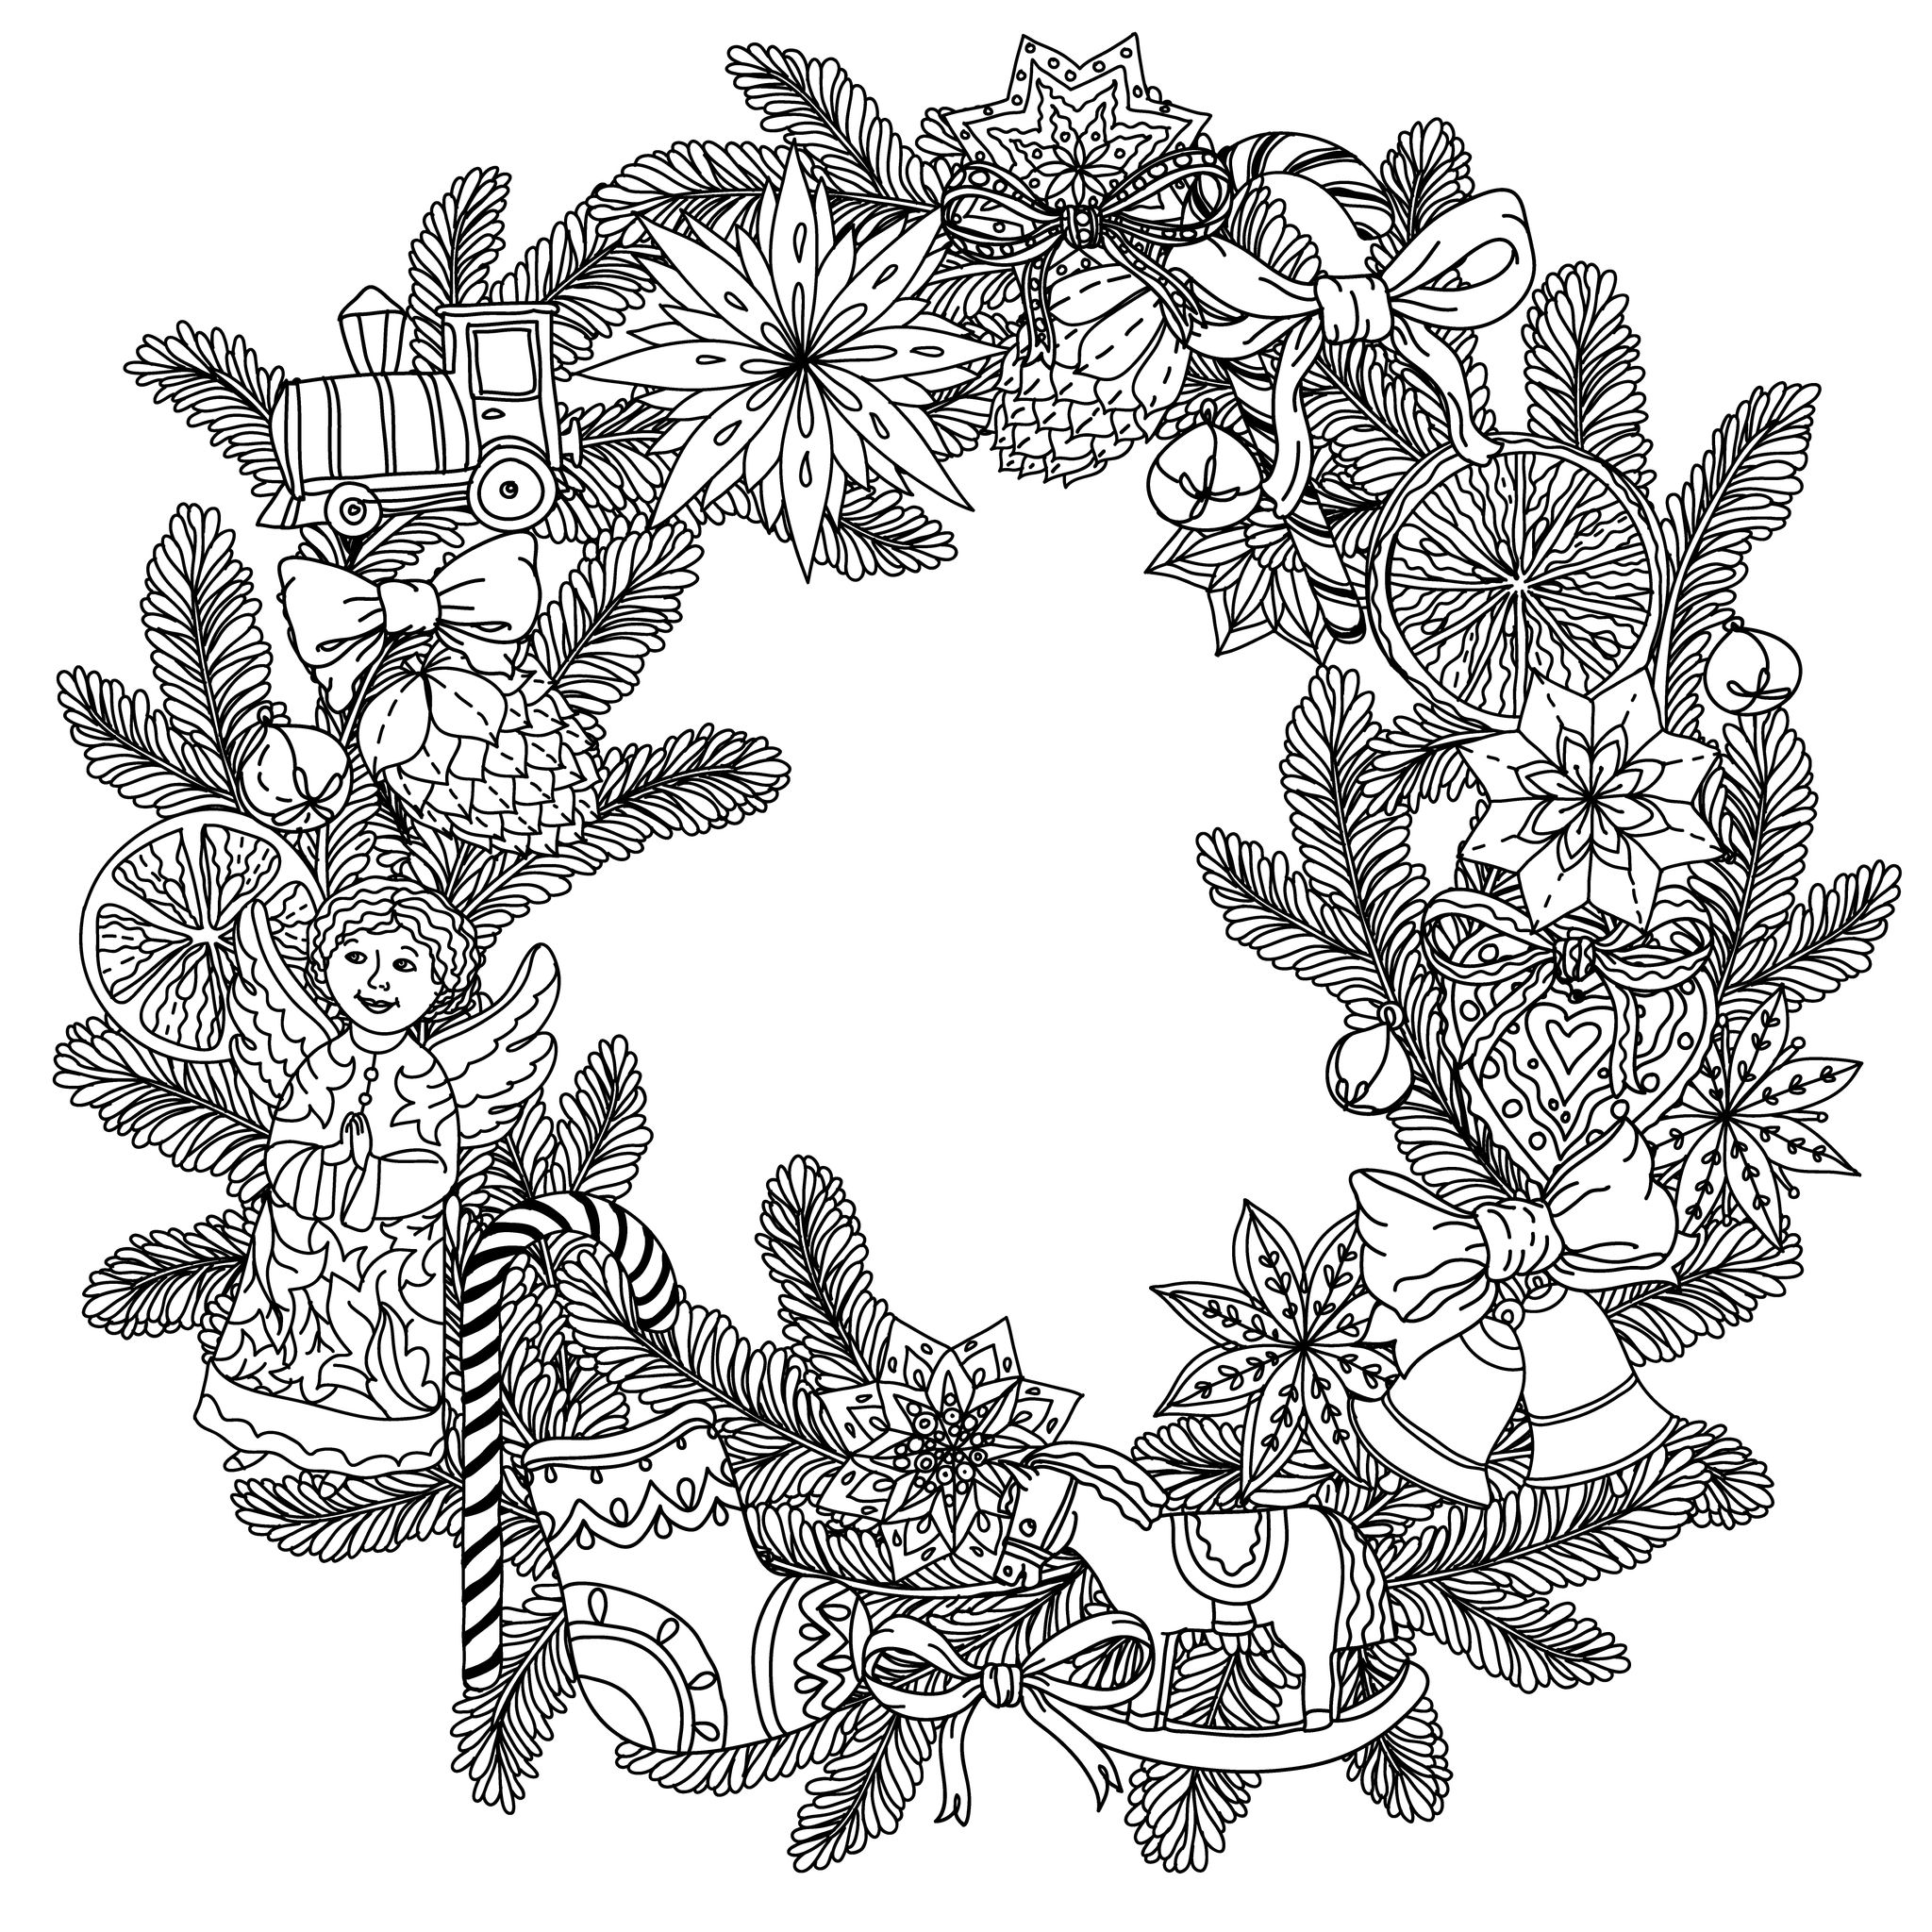 Christmas wreath with decorative items, black and white. the best for your design, textiles, posters, coloring book